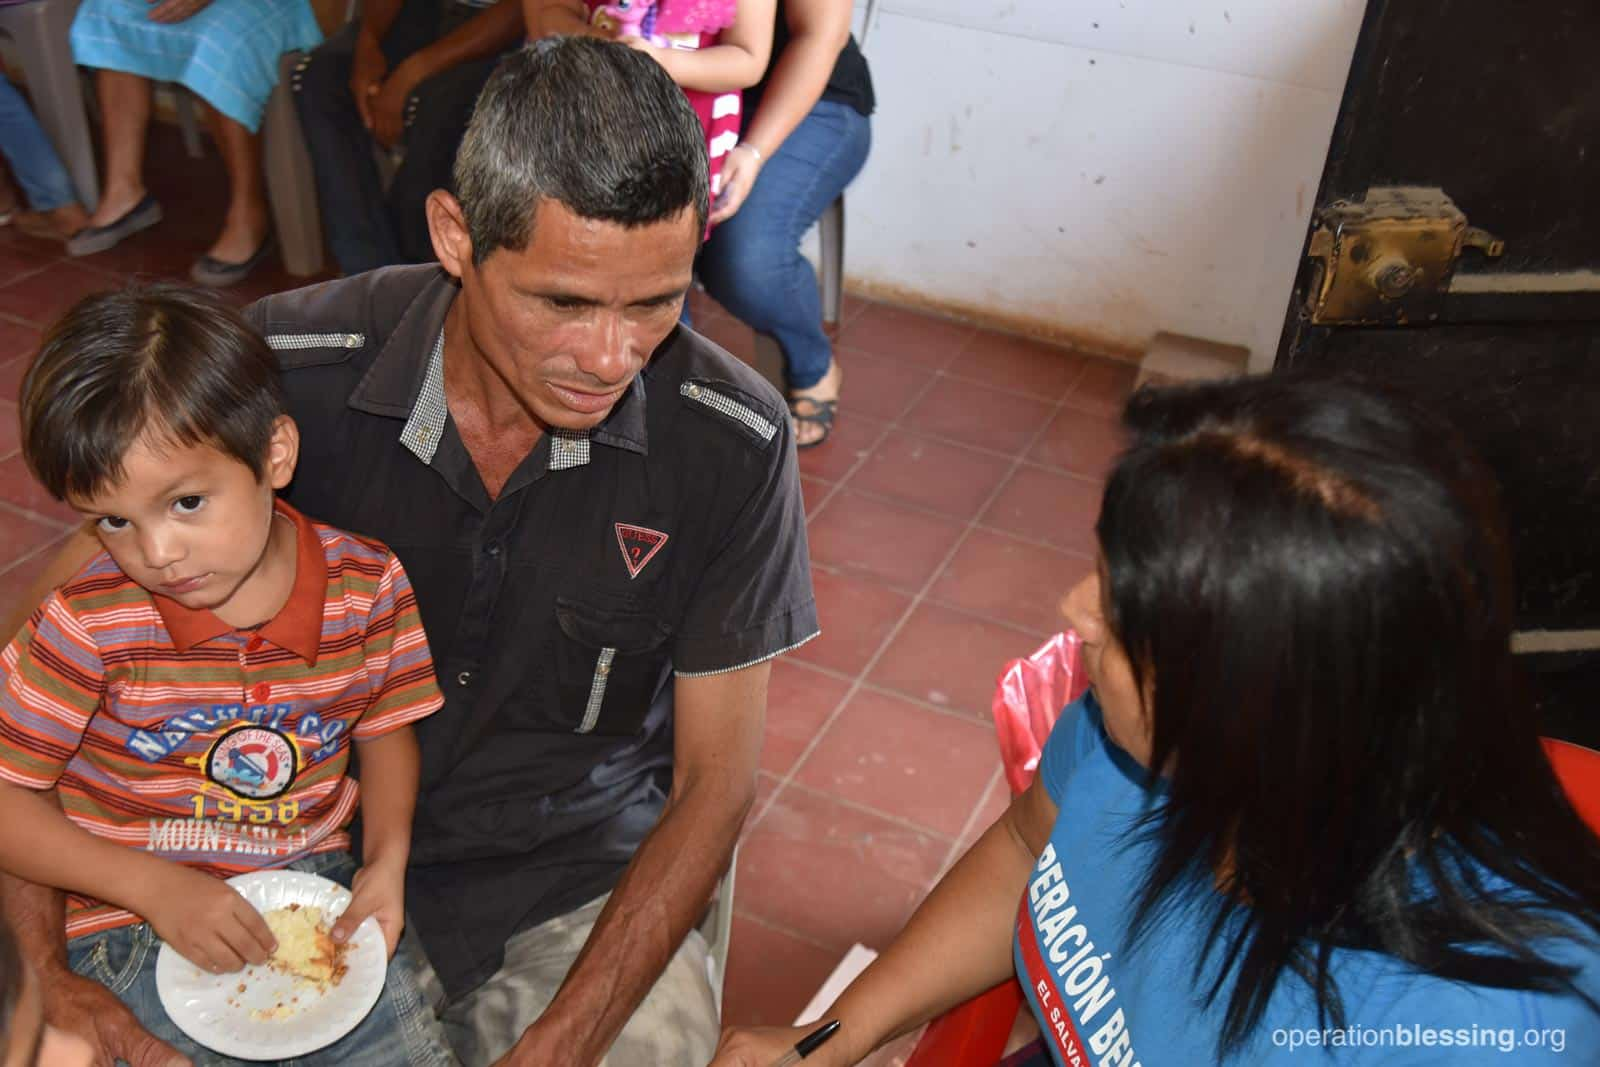 Santos and his son at an Operation Blessing medical brigade.